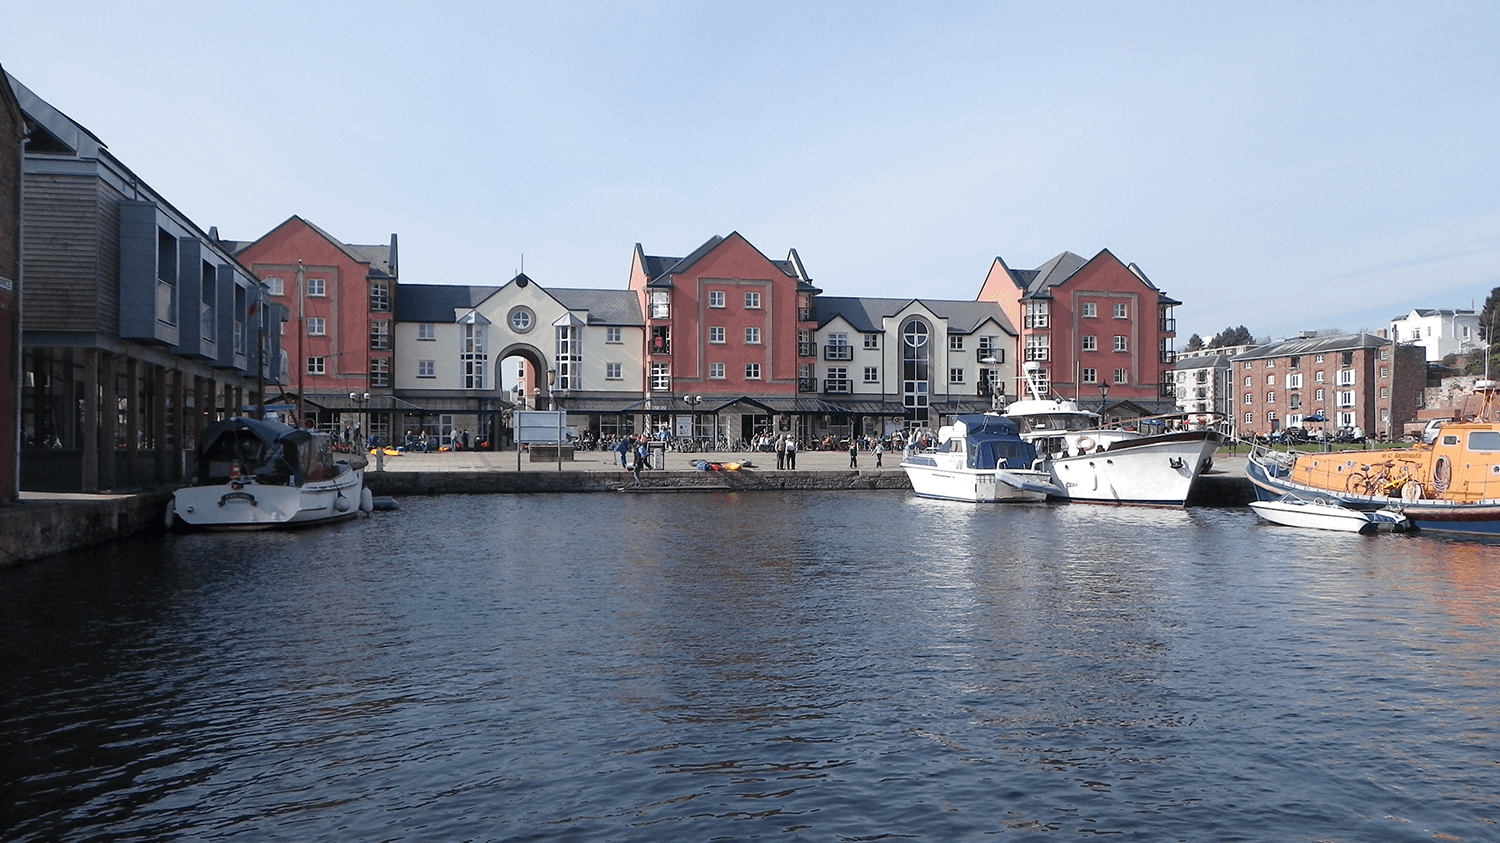 Buildings on Exeter Quay